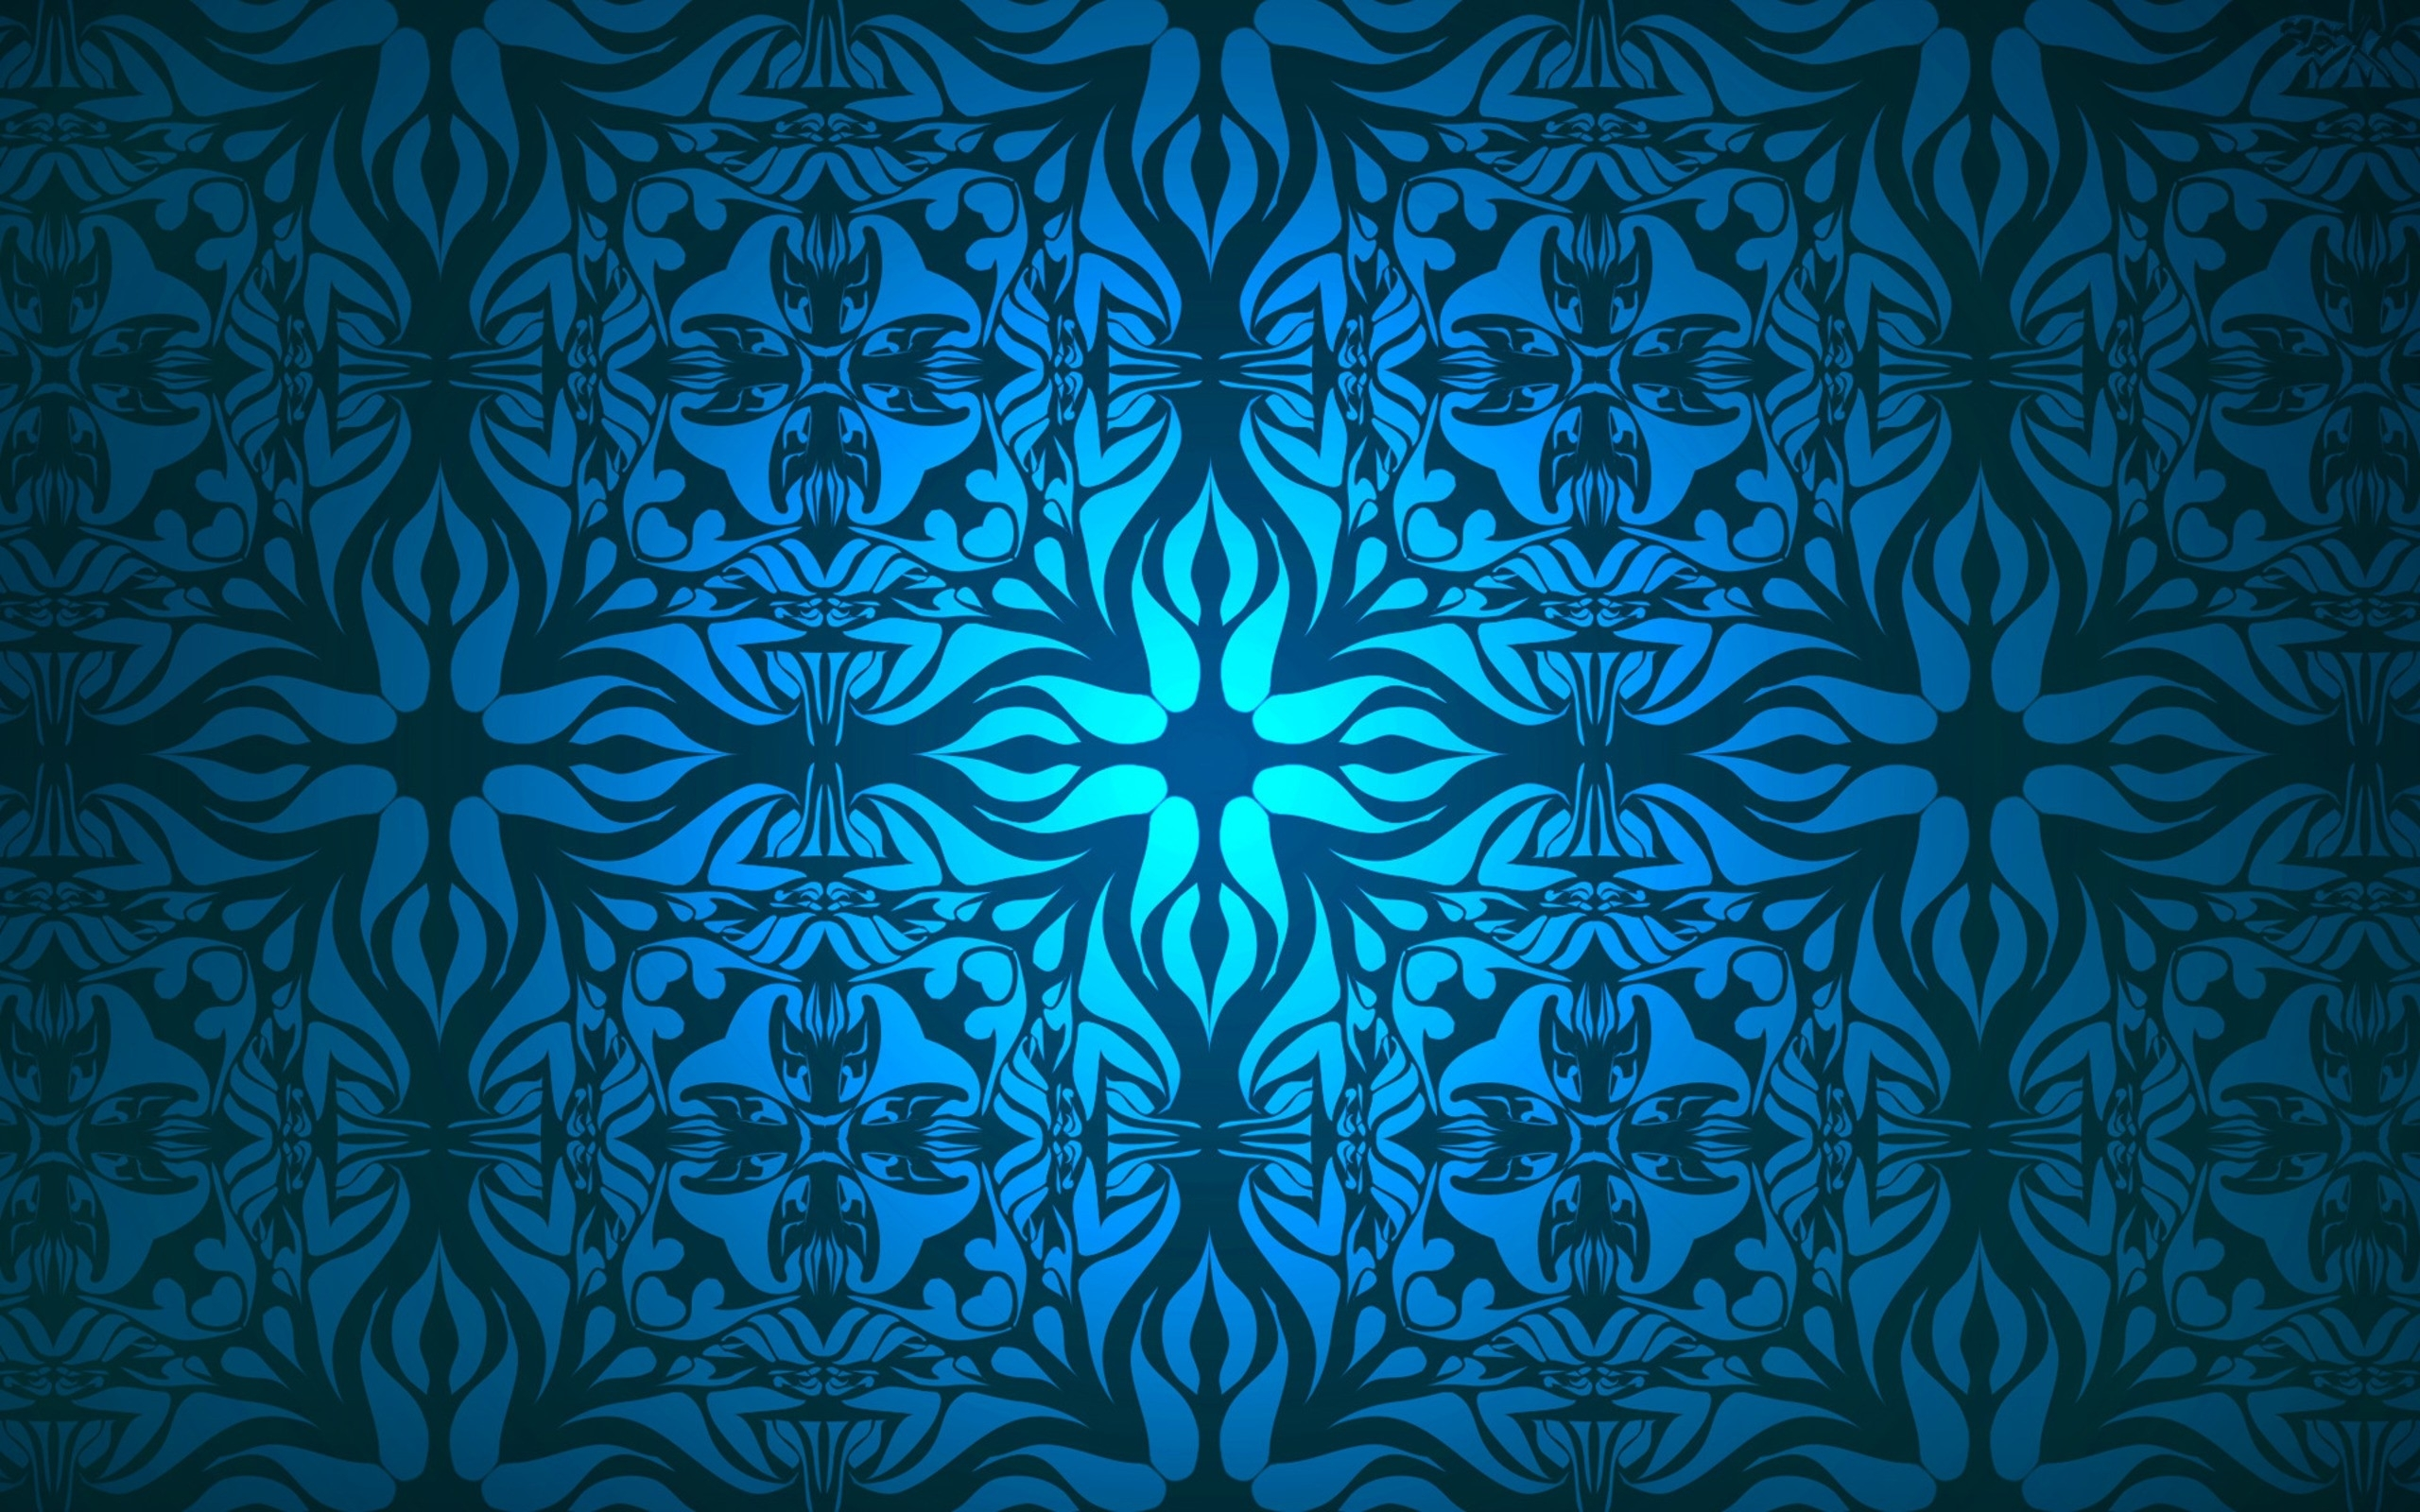 Black and blue background pattern 4234838 2560x1600 for Dark pattern background